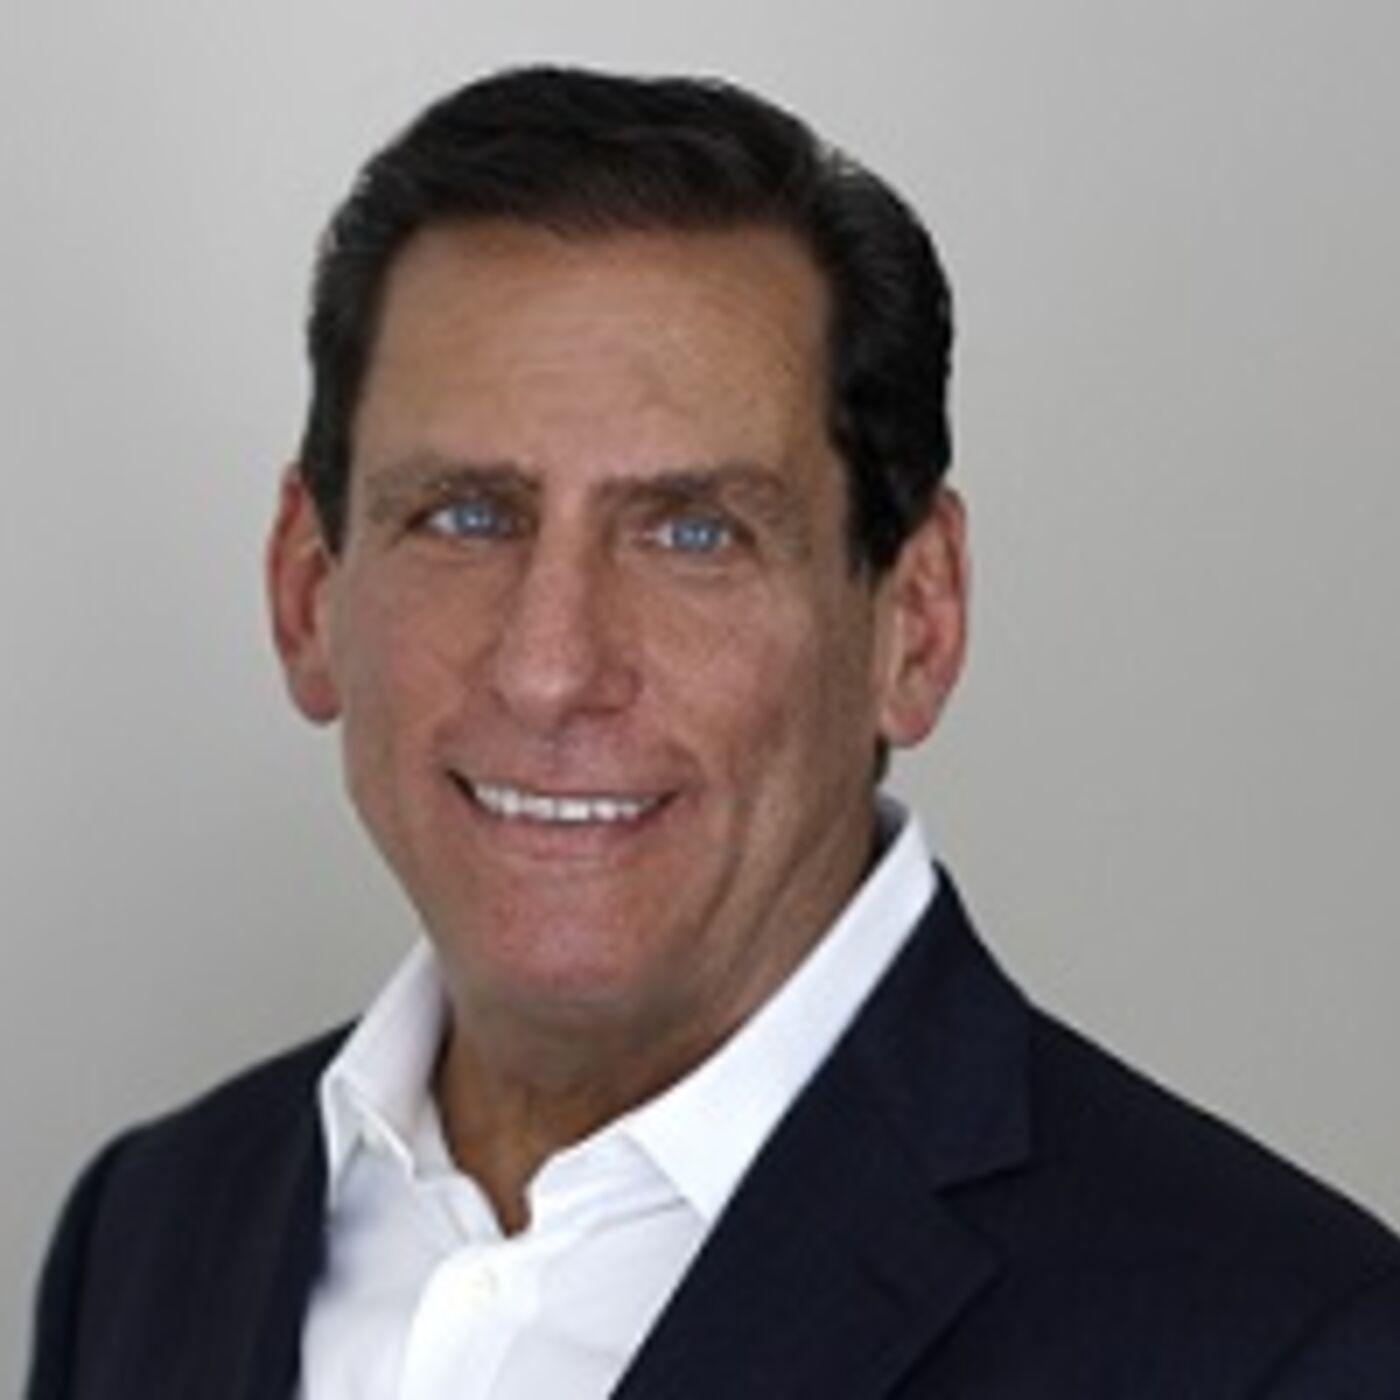 Earned media attribution technology, PR research, and calculating PR's ROI w/ Cision's Mark Weiner